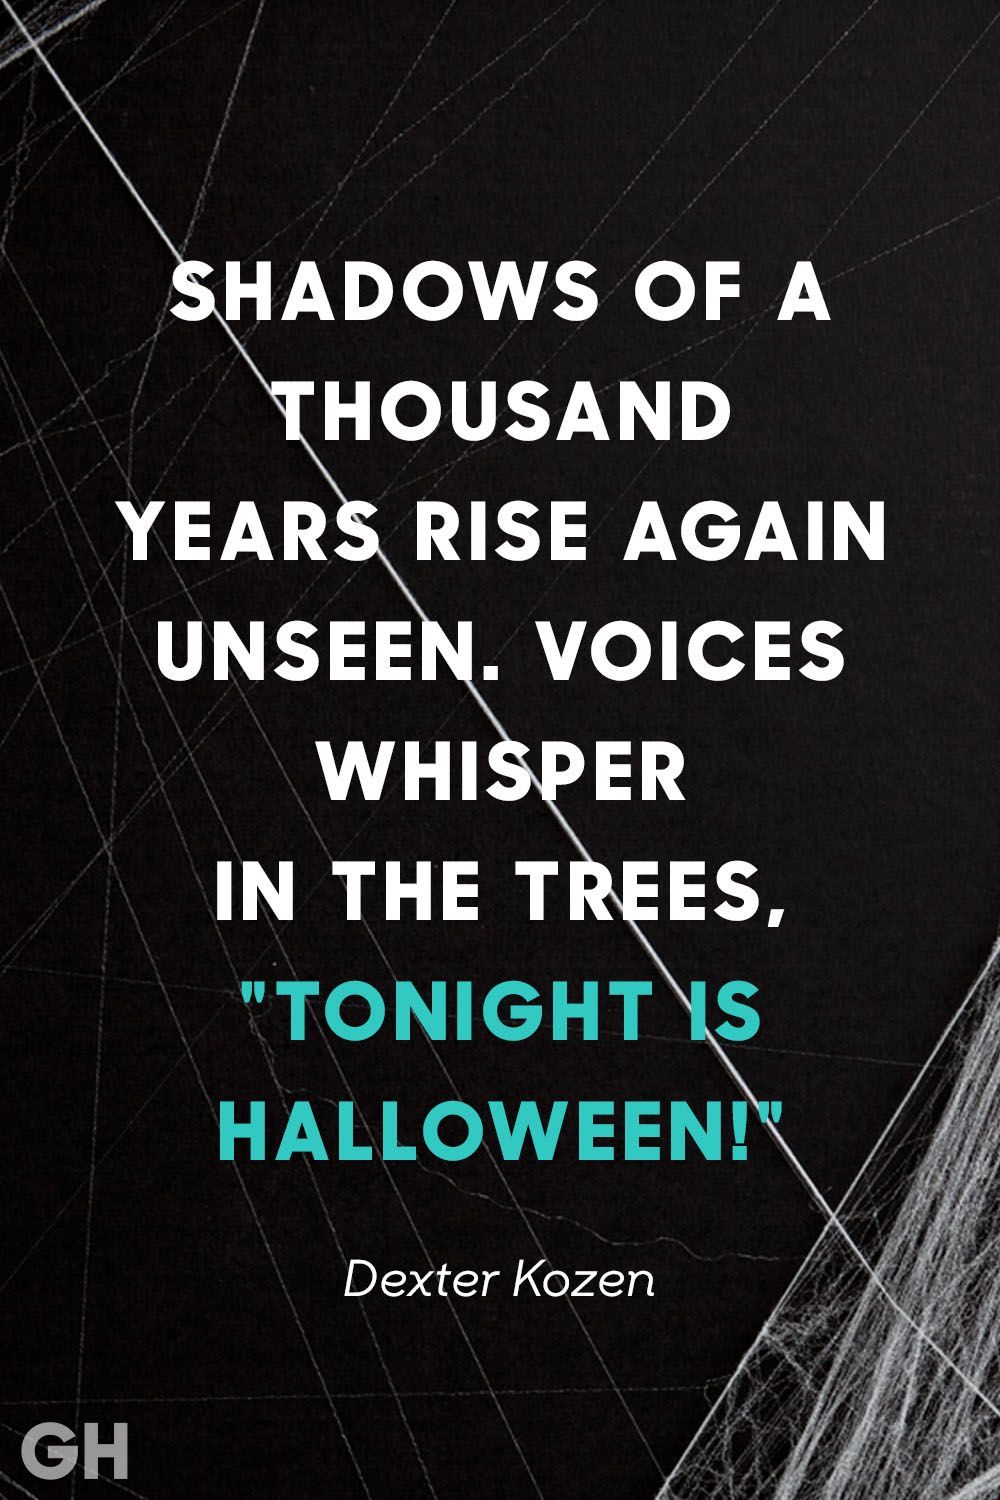 Delightful Tonight Is Halloween Quote